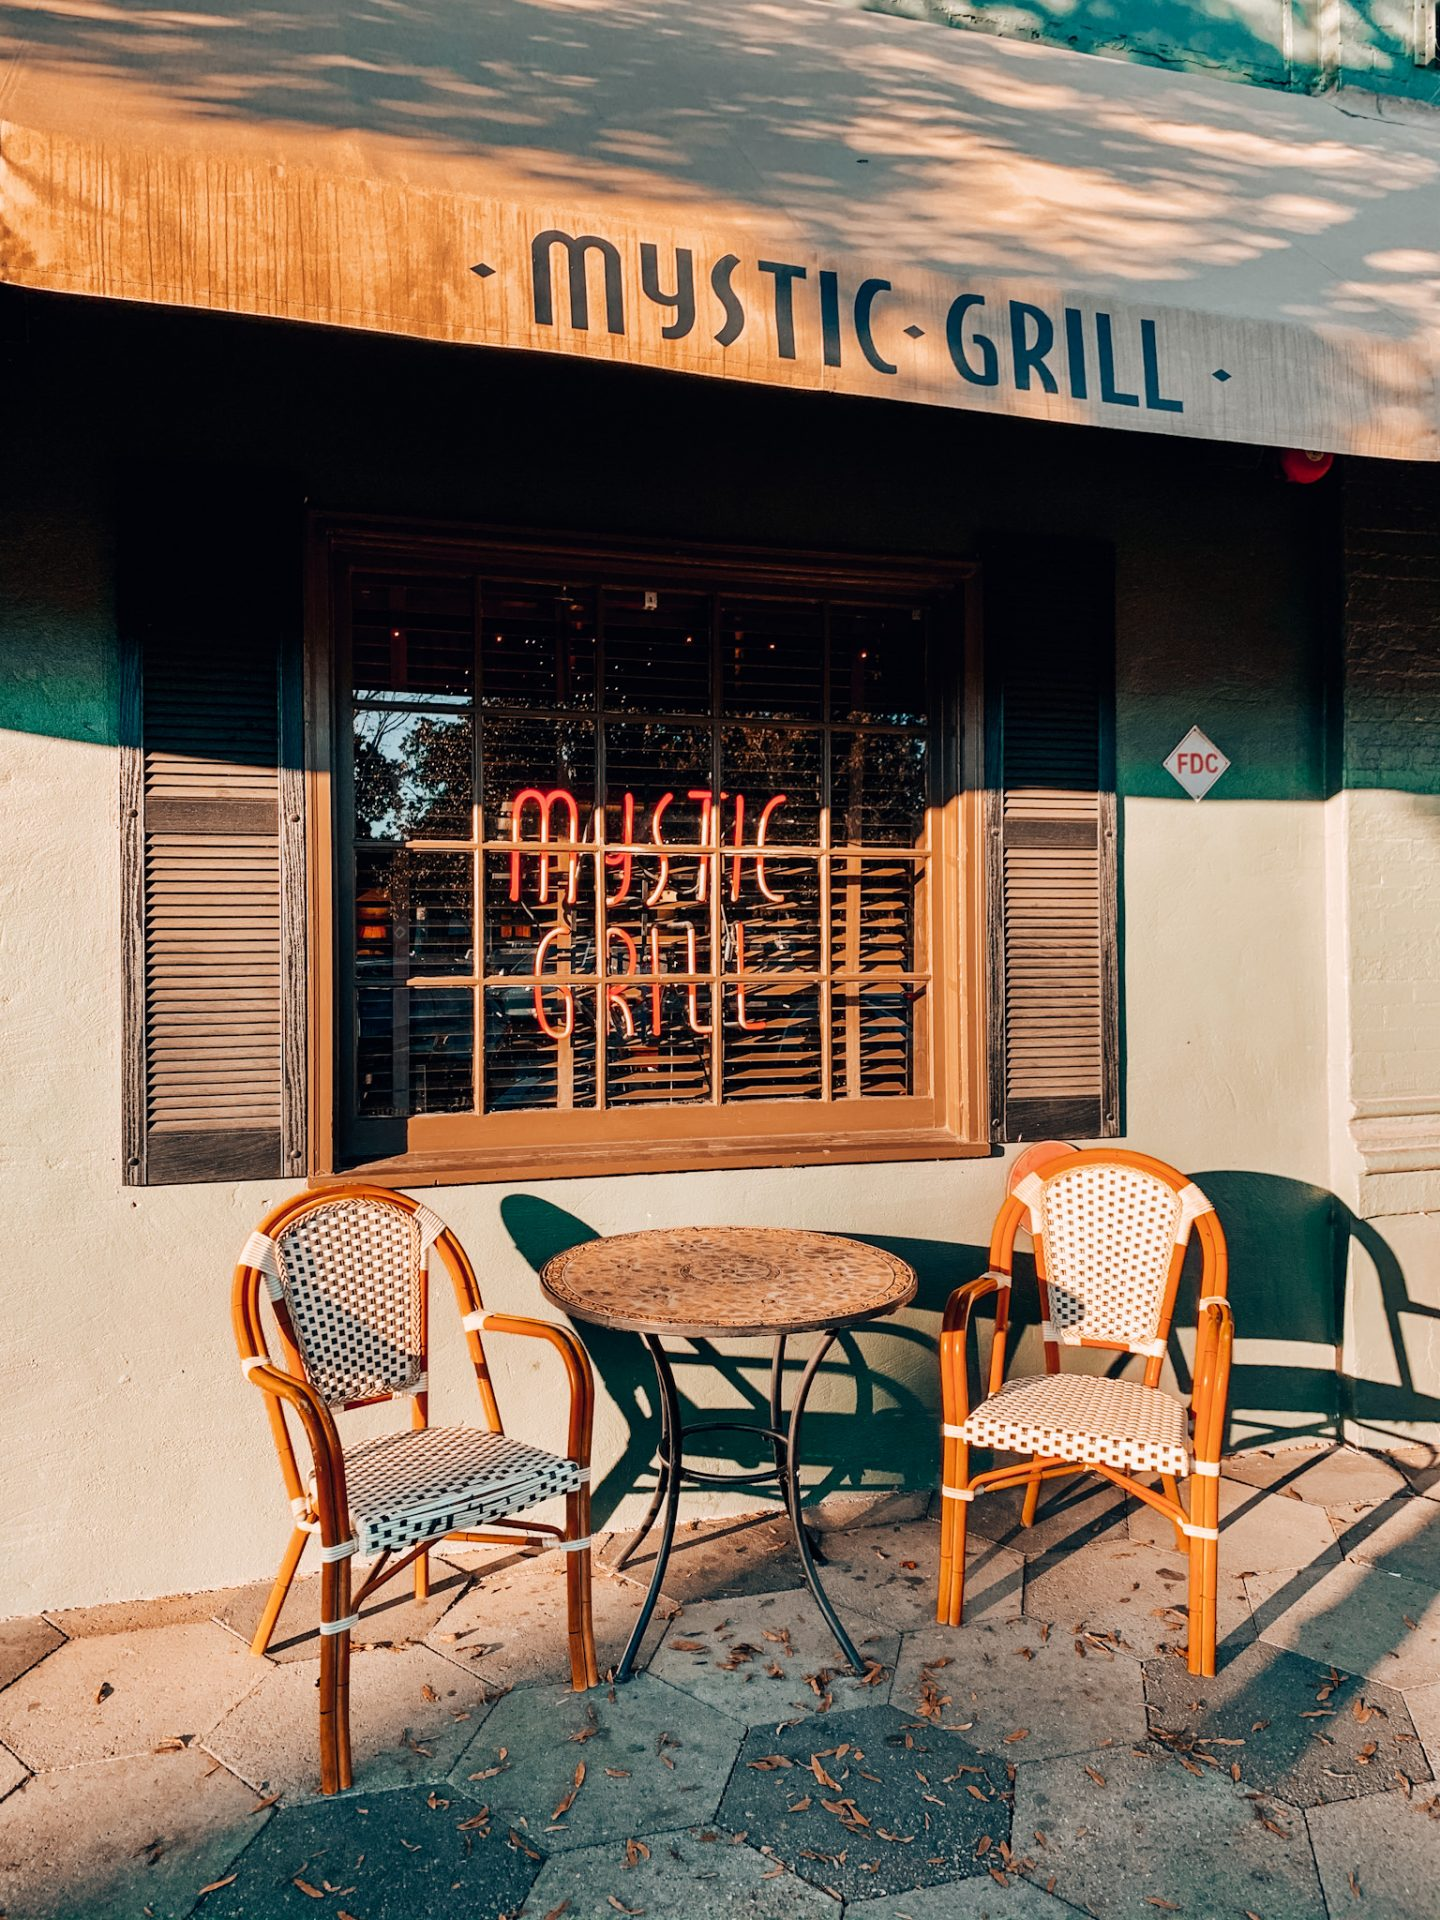 The Mystic Grill in Covington, Georgia